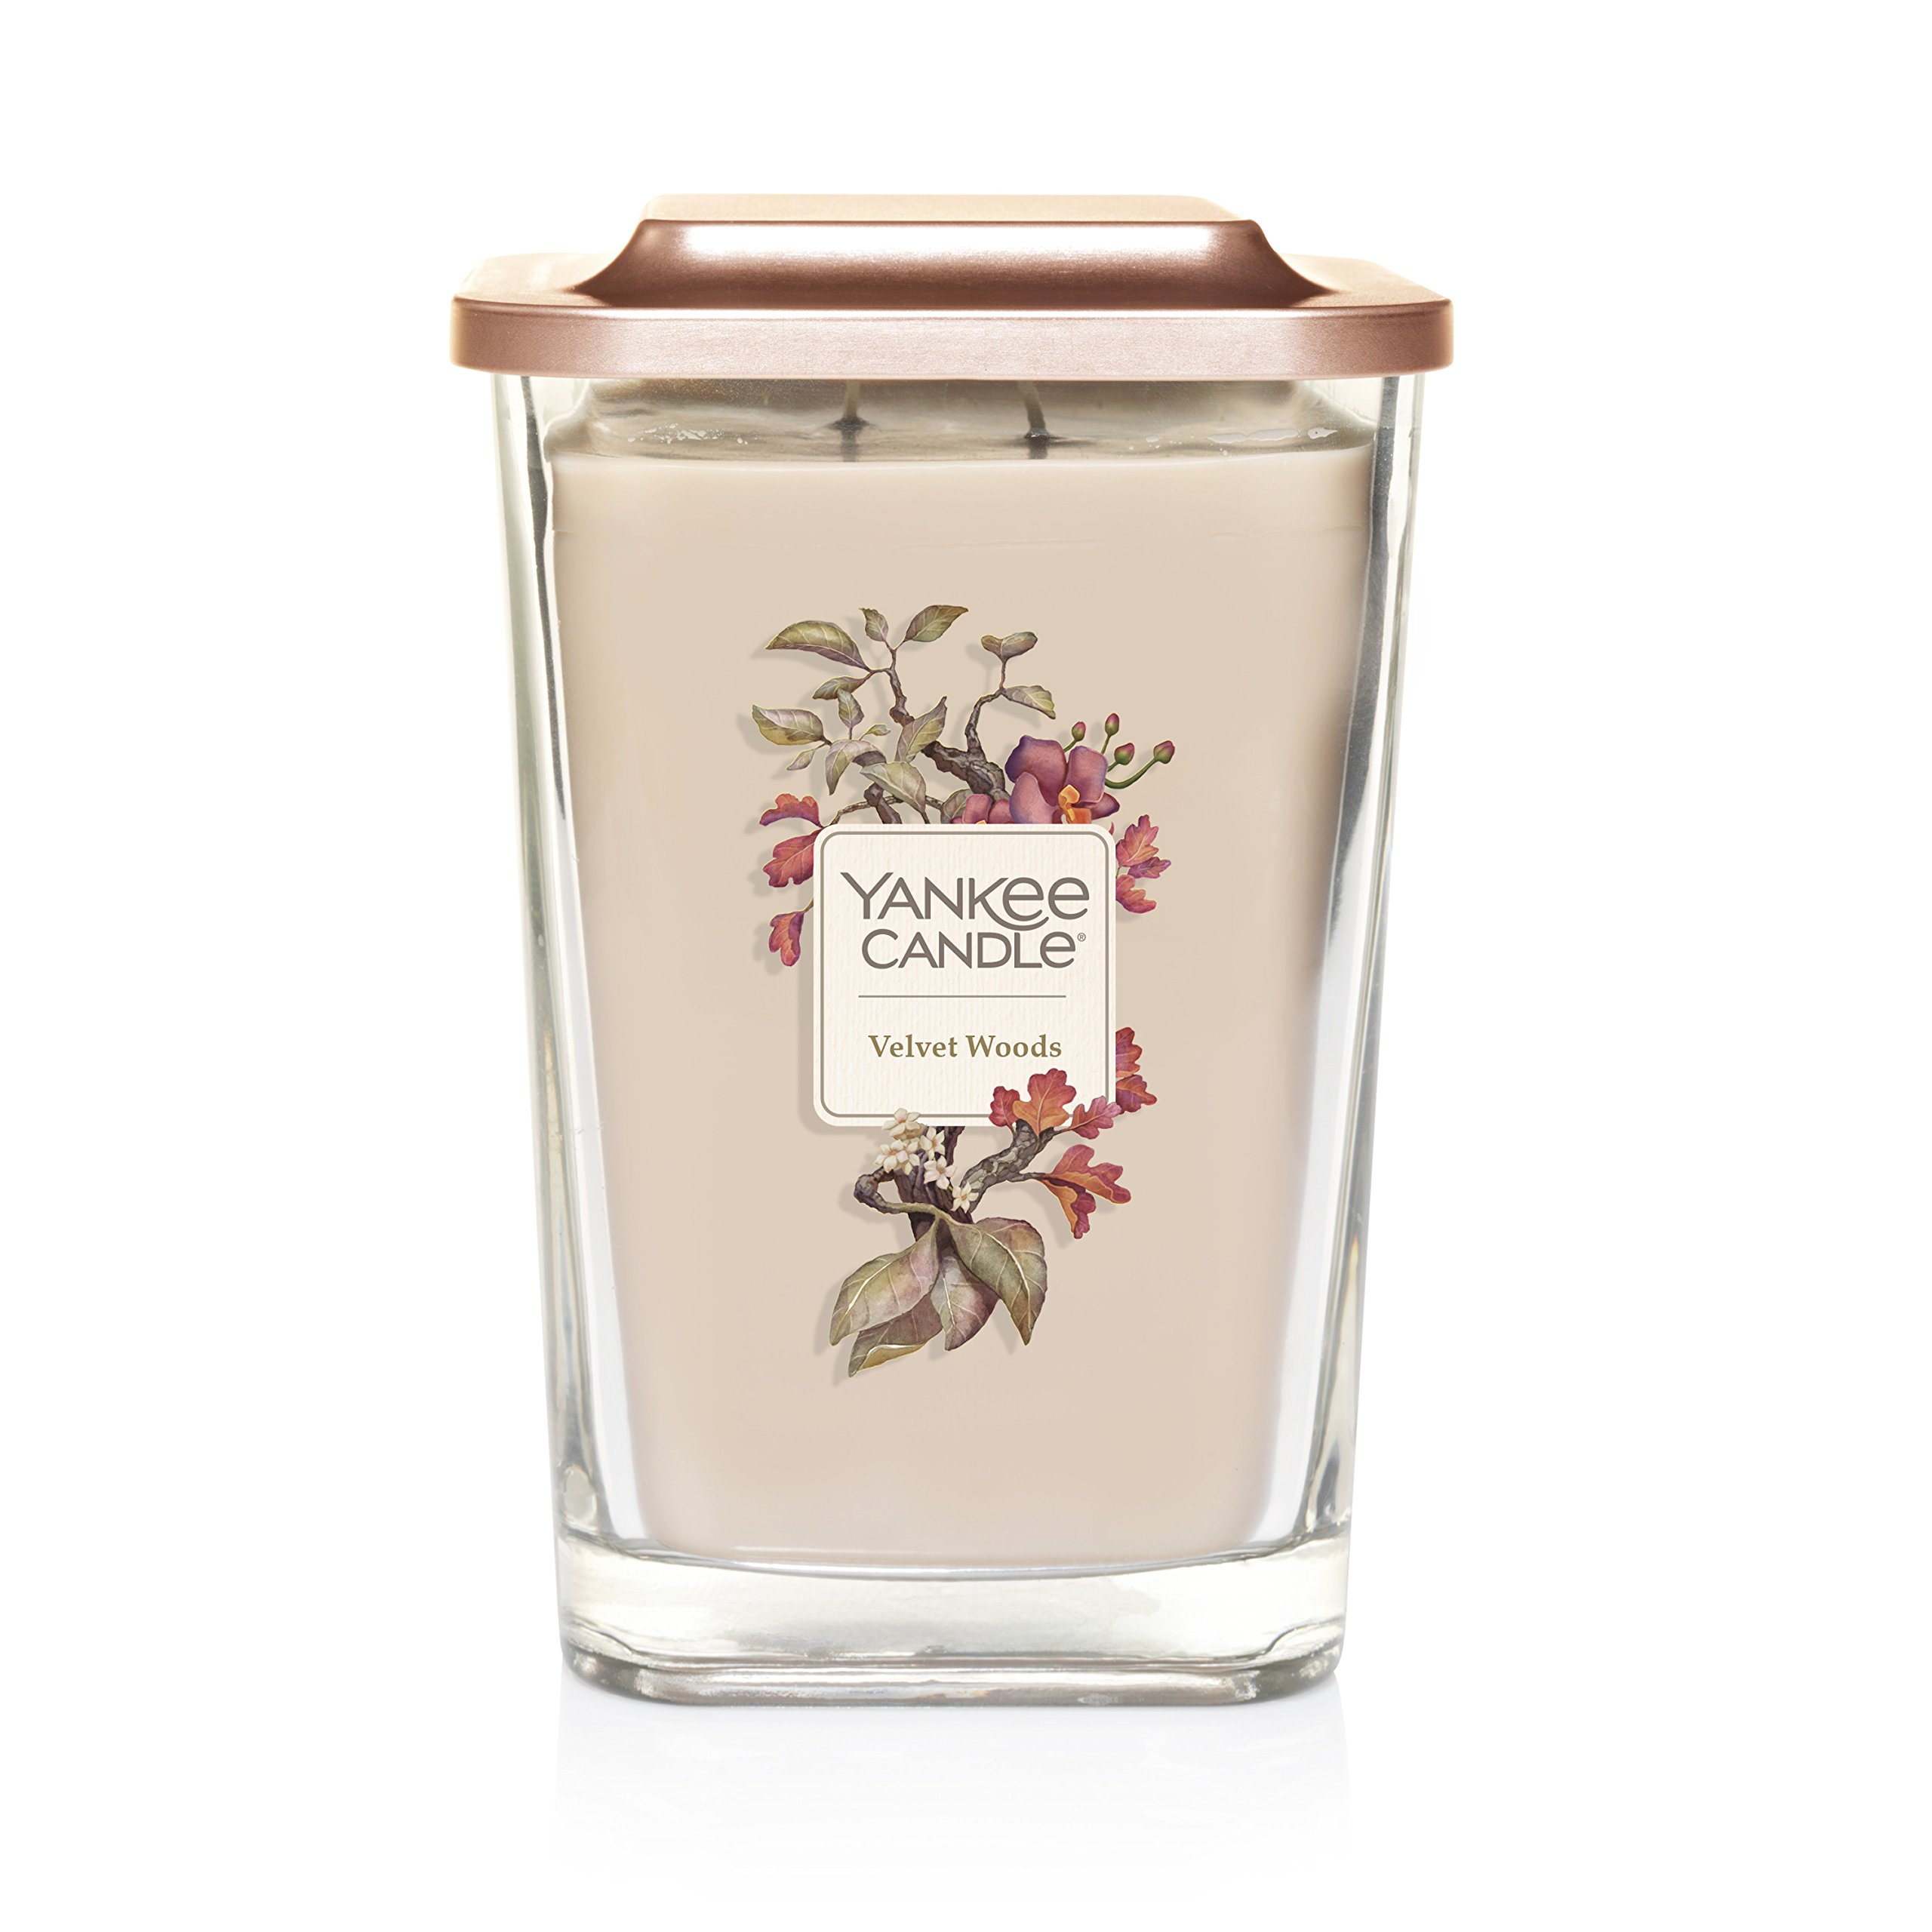 Yankee Candle Elevation Collection with Platform Lid, Large 2-Wick Square Candle, Velvet Woods